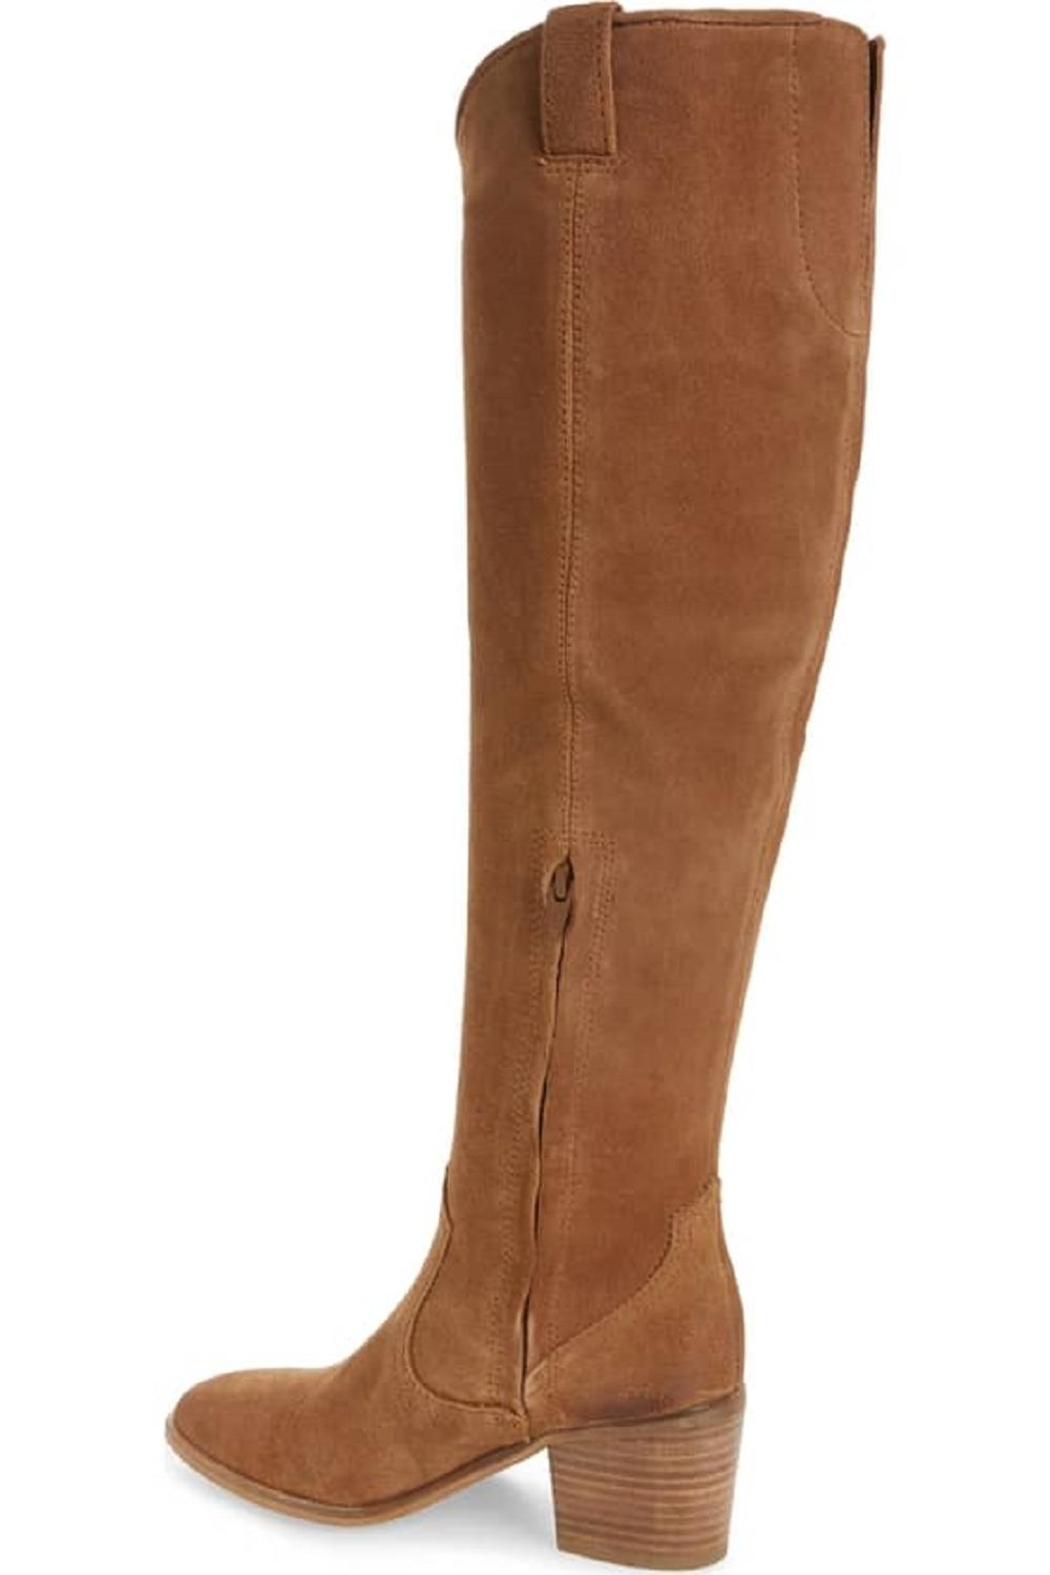 Sbicca vintage collection Over Knee Boot - Front Full Image